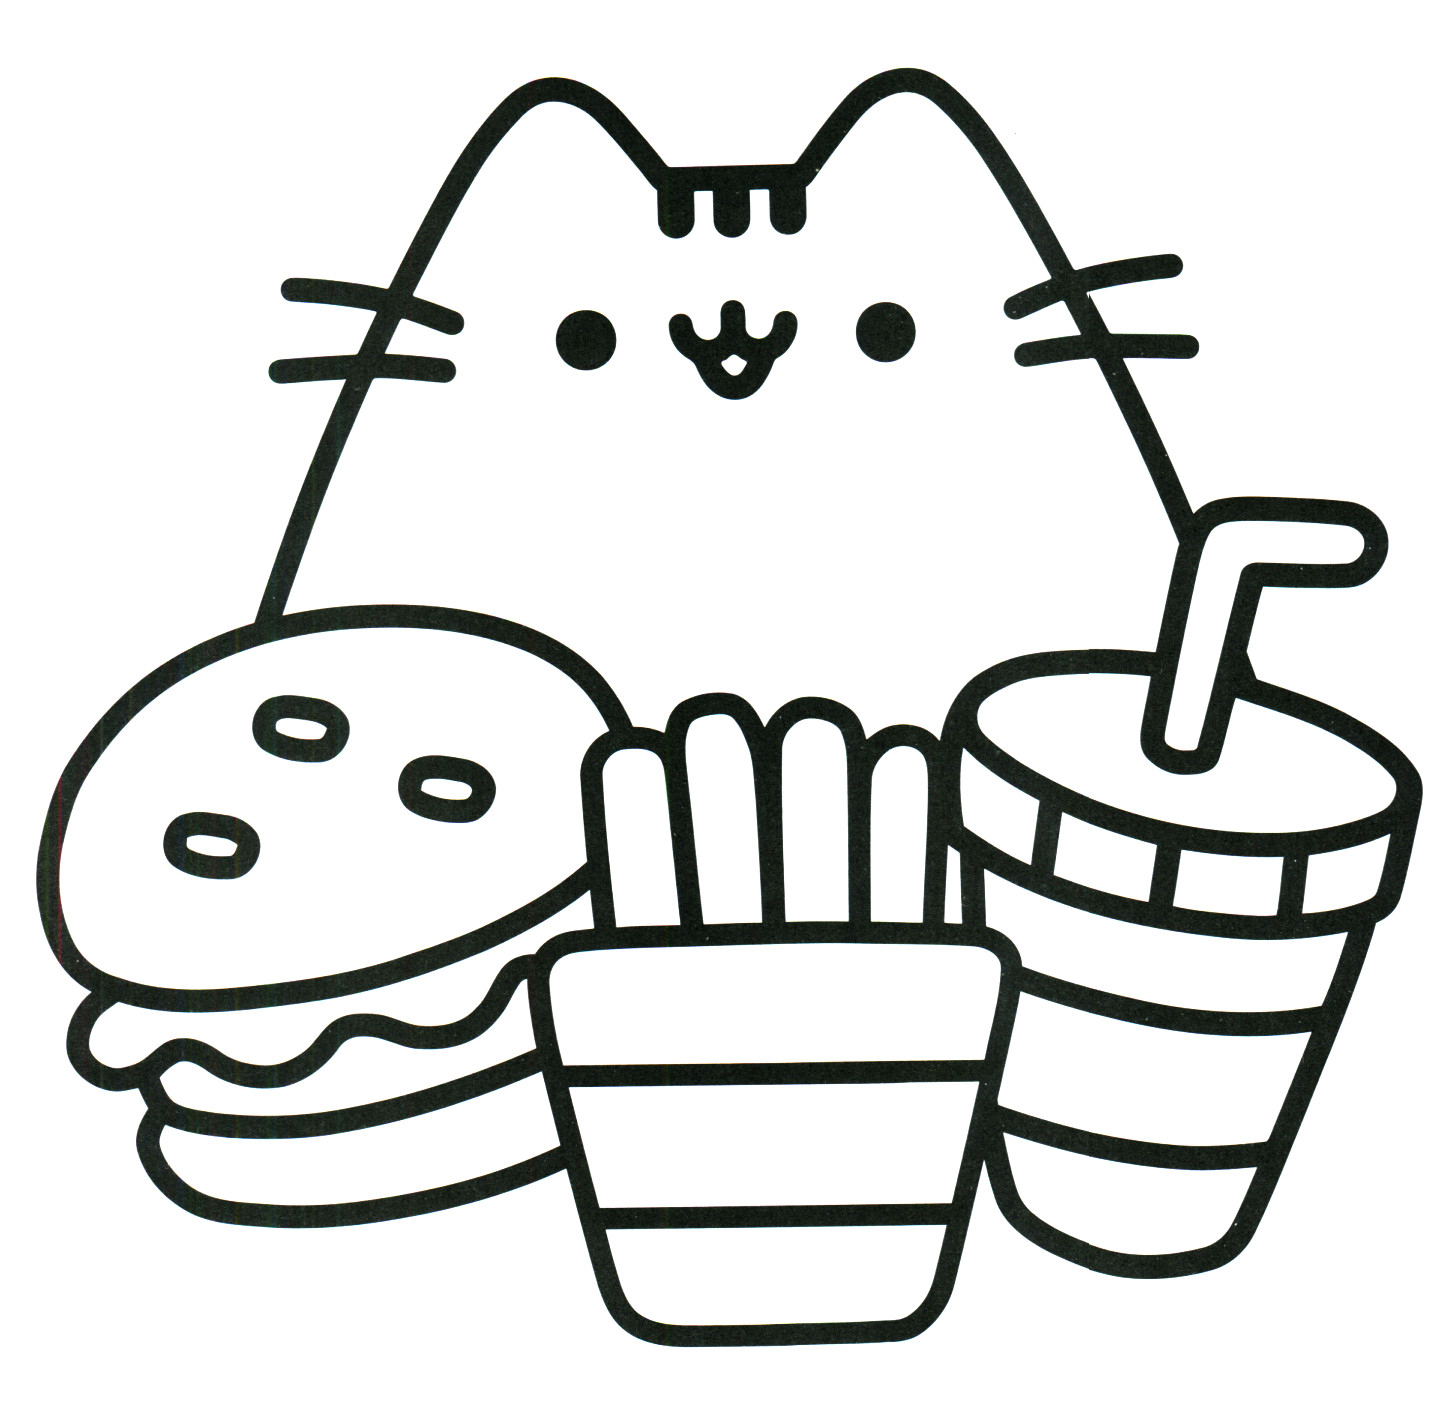 Nyan Cat Coloring Pages Nyan Cat Colorin 590594 Png Images Pngio